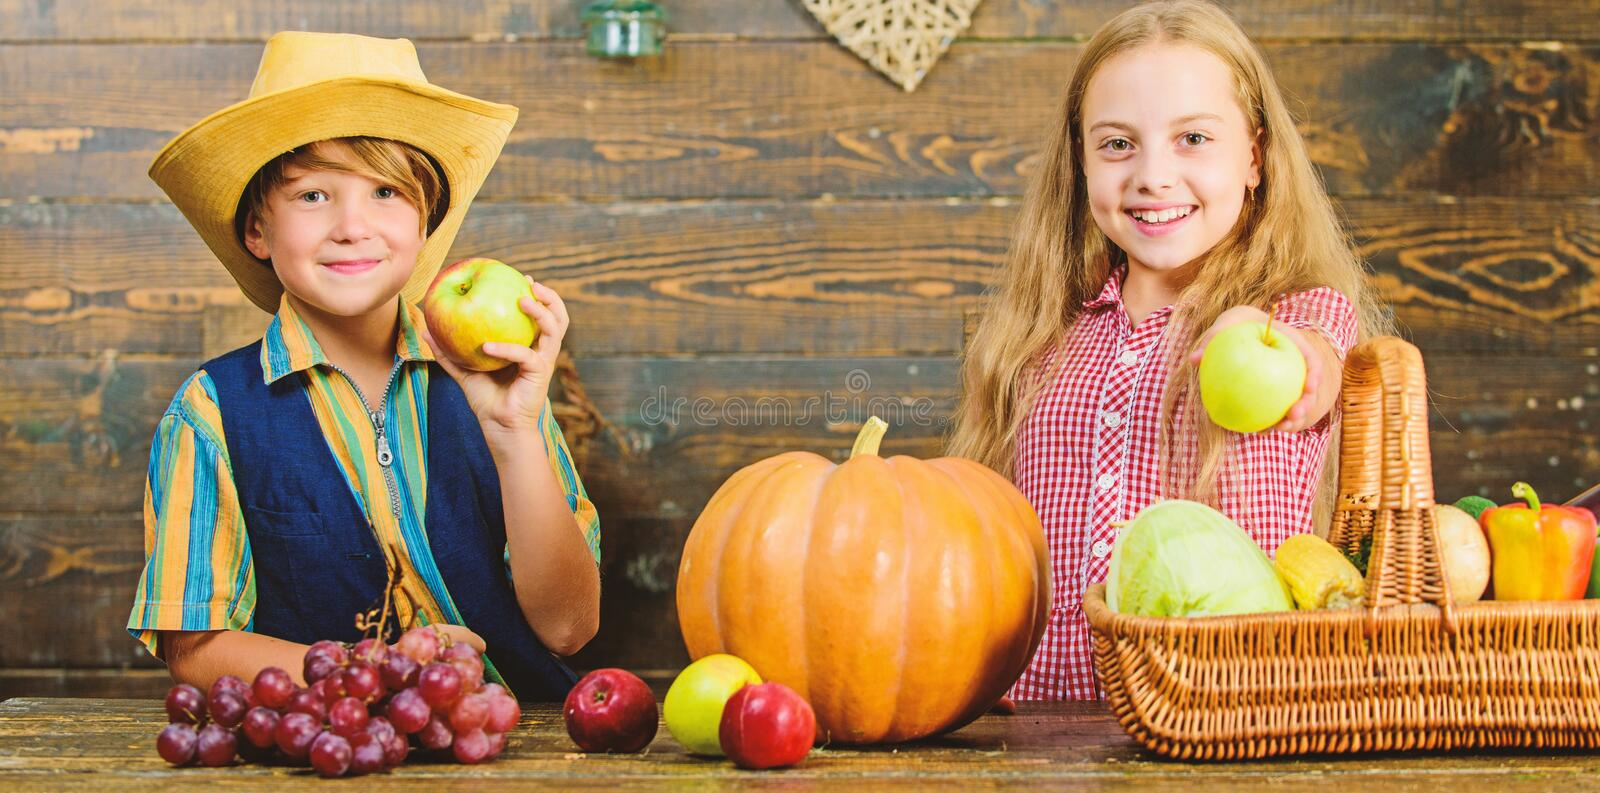 Elementary school fall festival idea. Celebrate harvest festival. Kids girl boy fresh vegetables harvest rustic style royalty free stock images